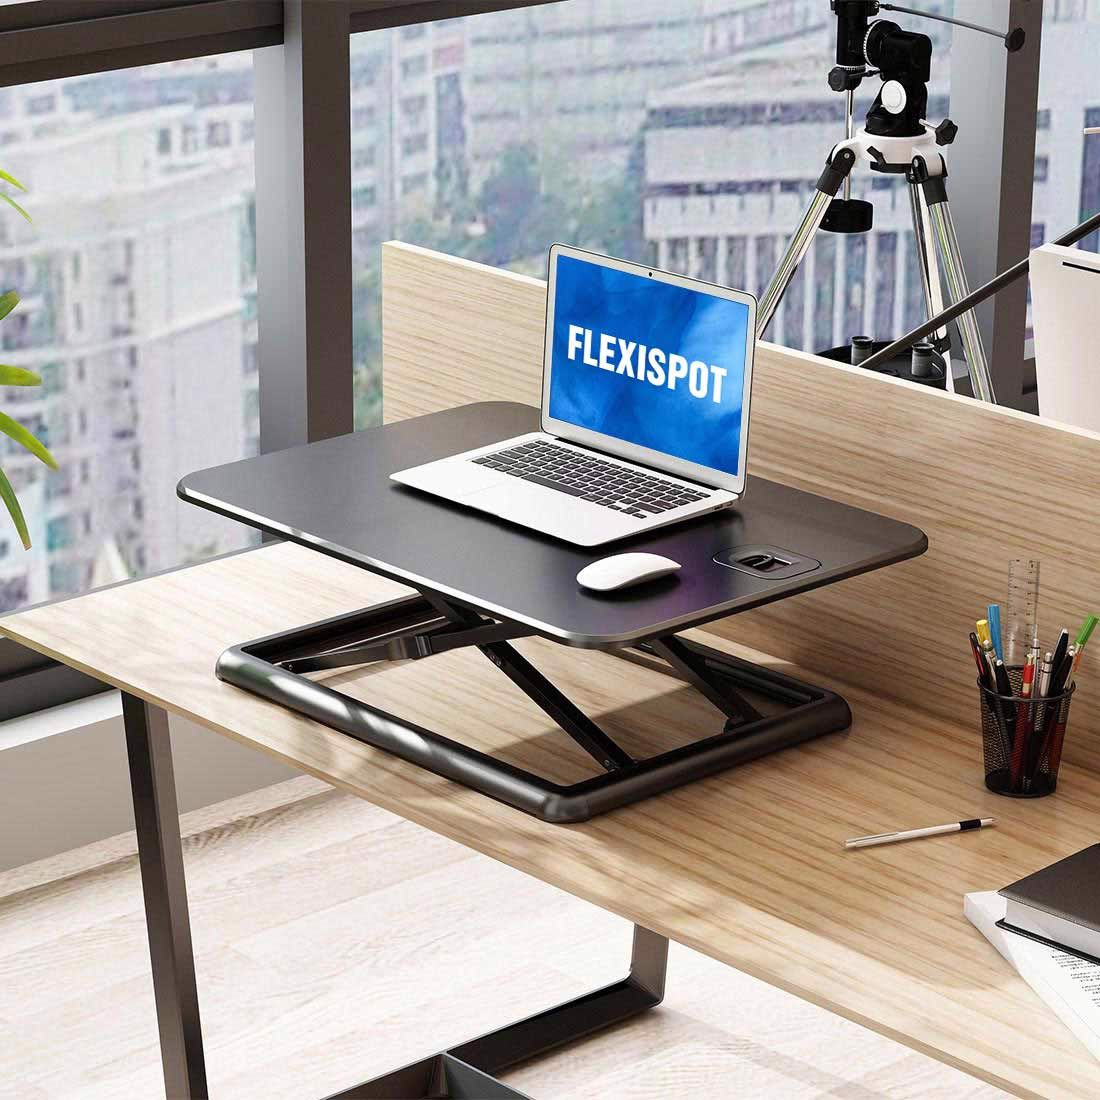 Top most popular Flexispot desk 2020